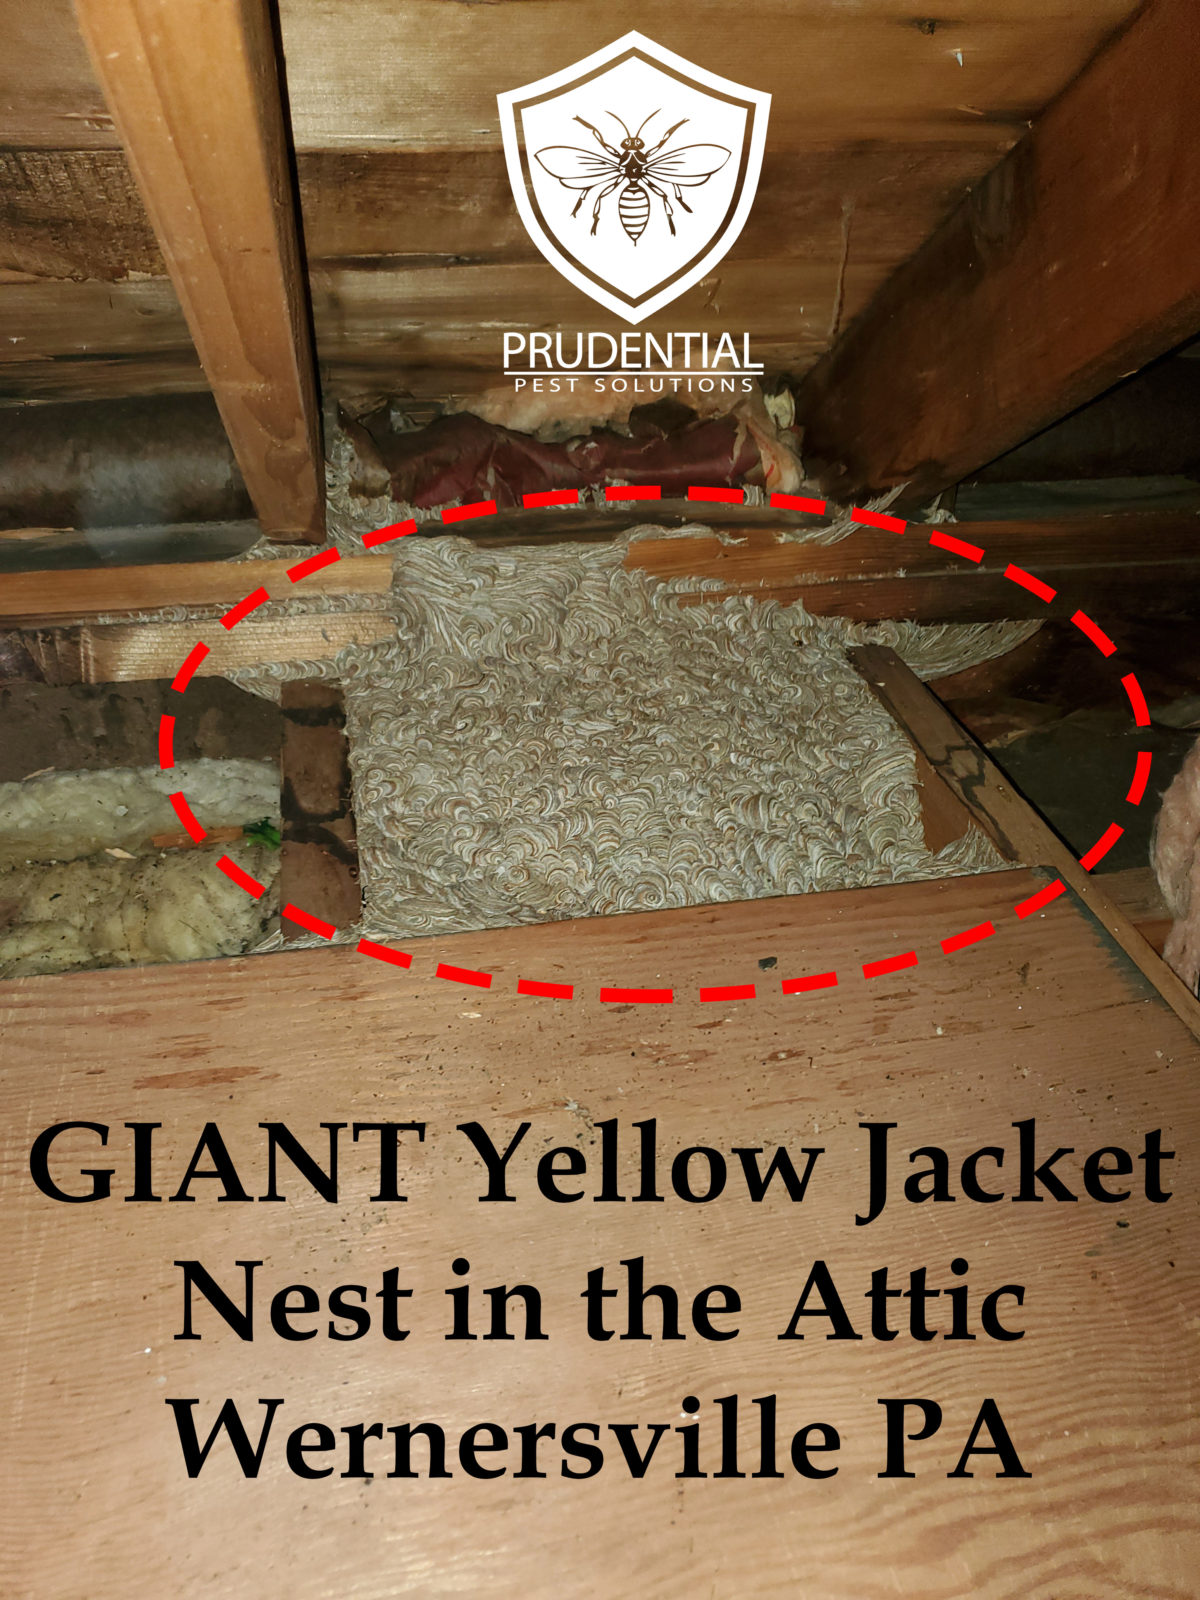 GIANT Yellow Jacket Nest in the Attic in Wernersville PA